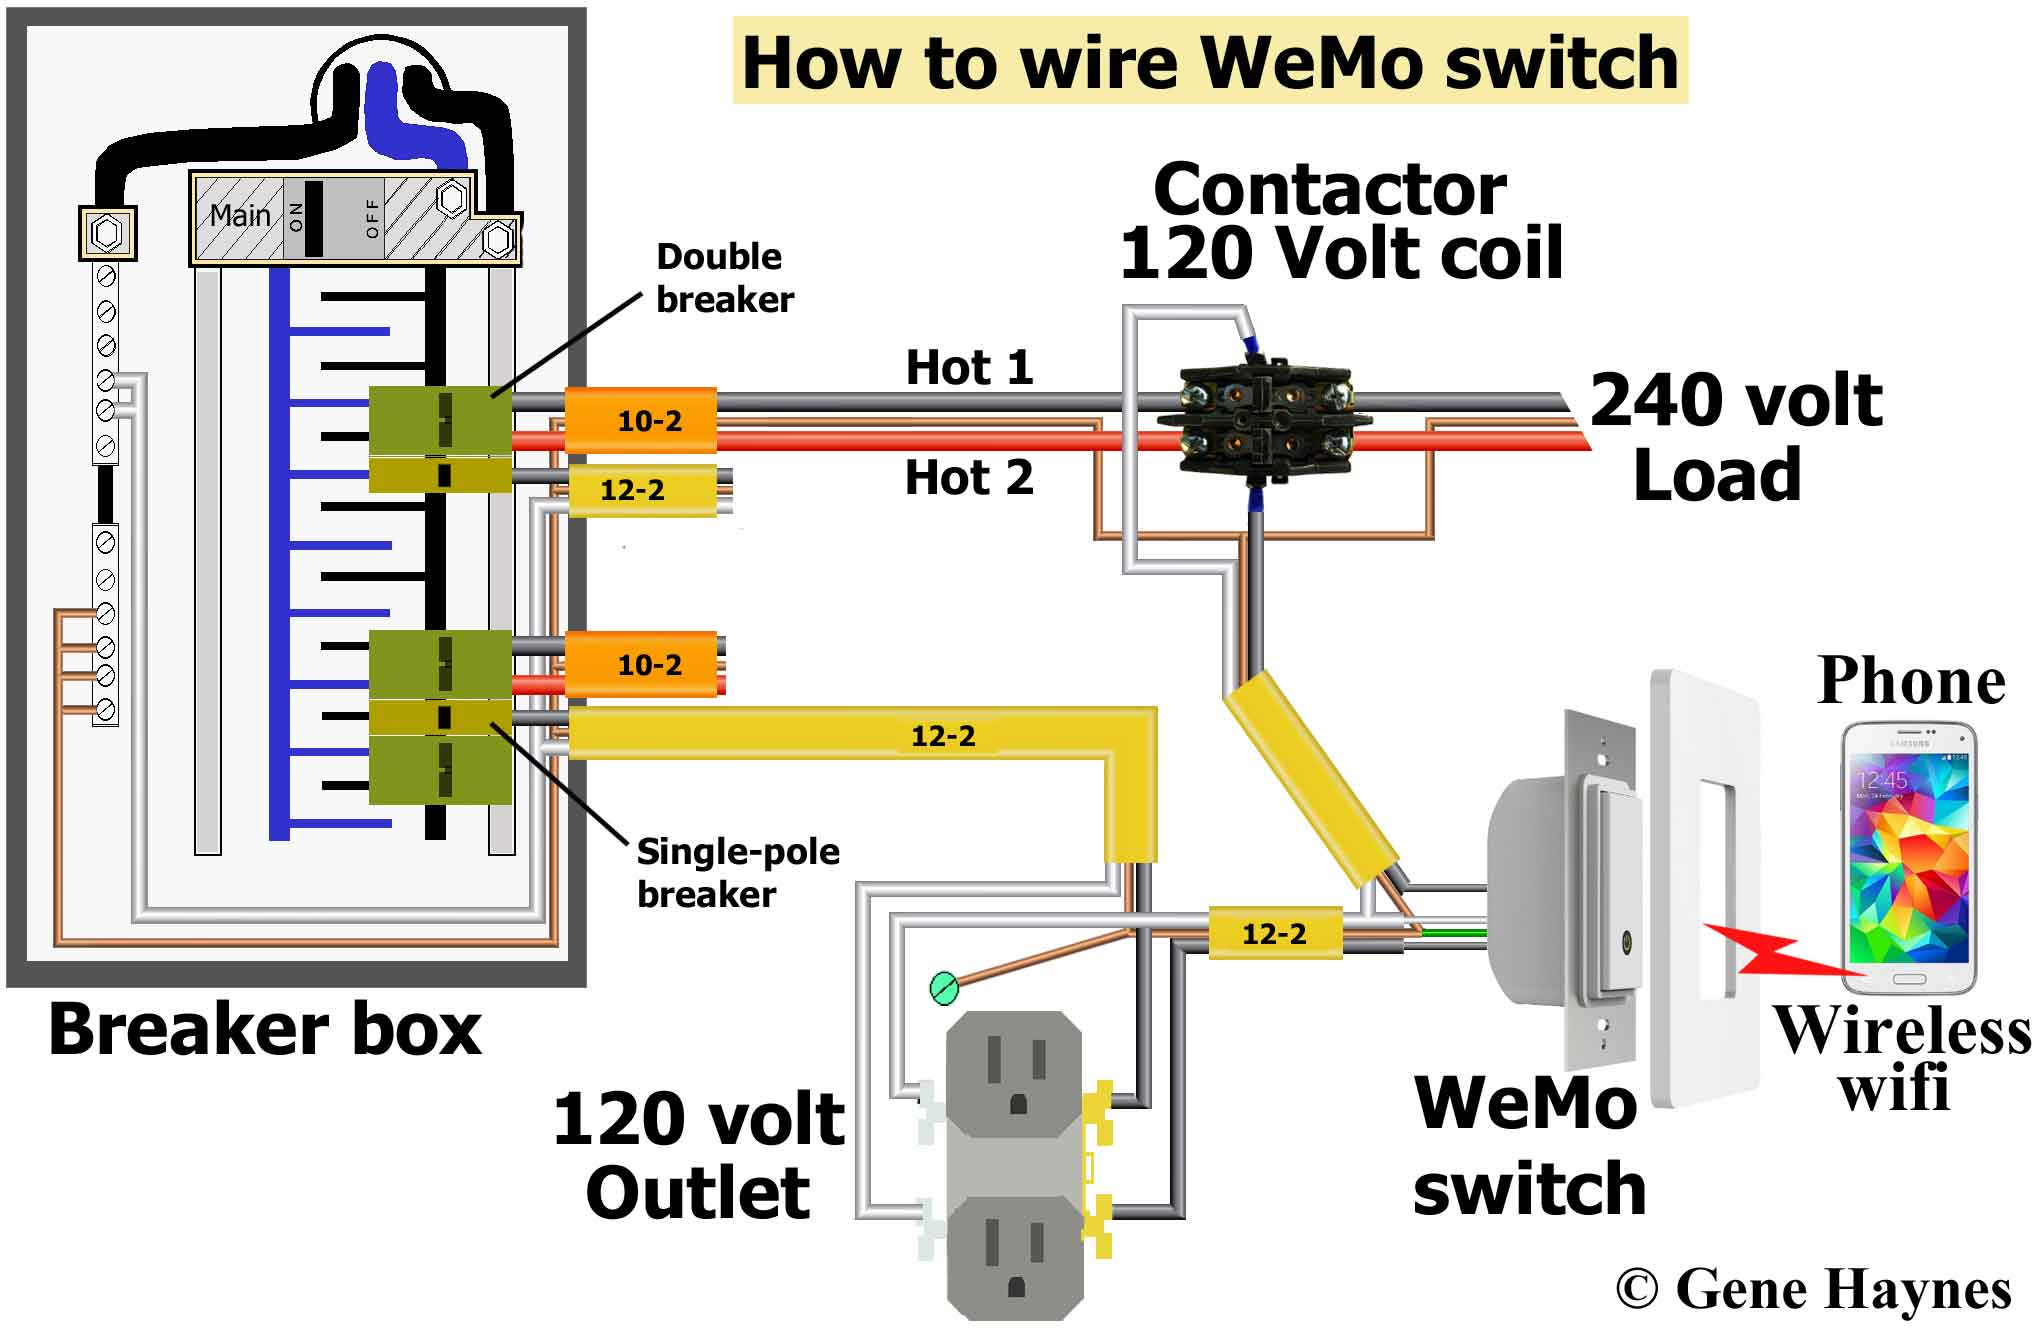 WeMo switch wiring illustration 3 control 240 volt with wemo volt free contact wiring diagram at nearapp.co